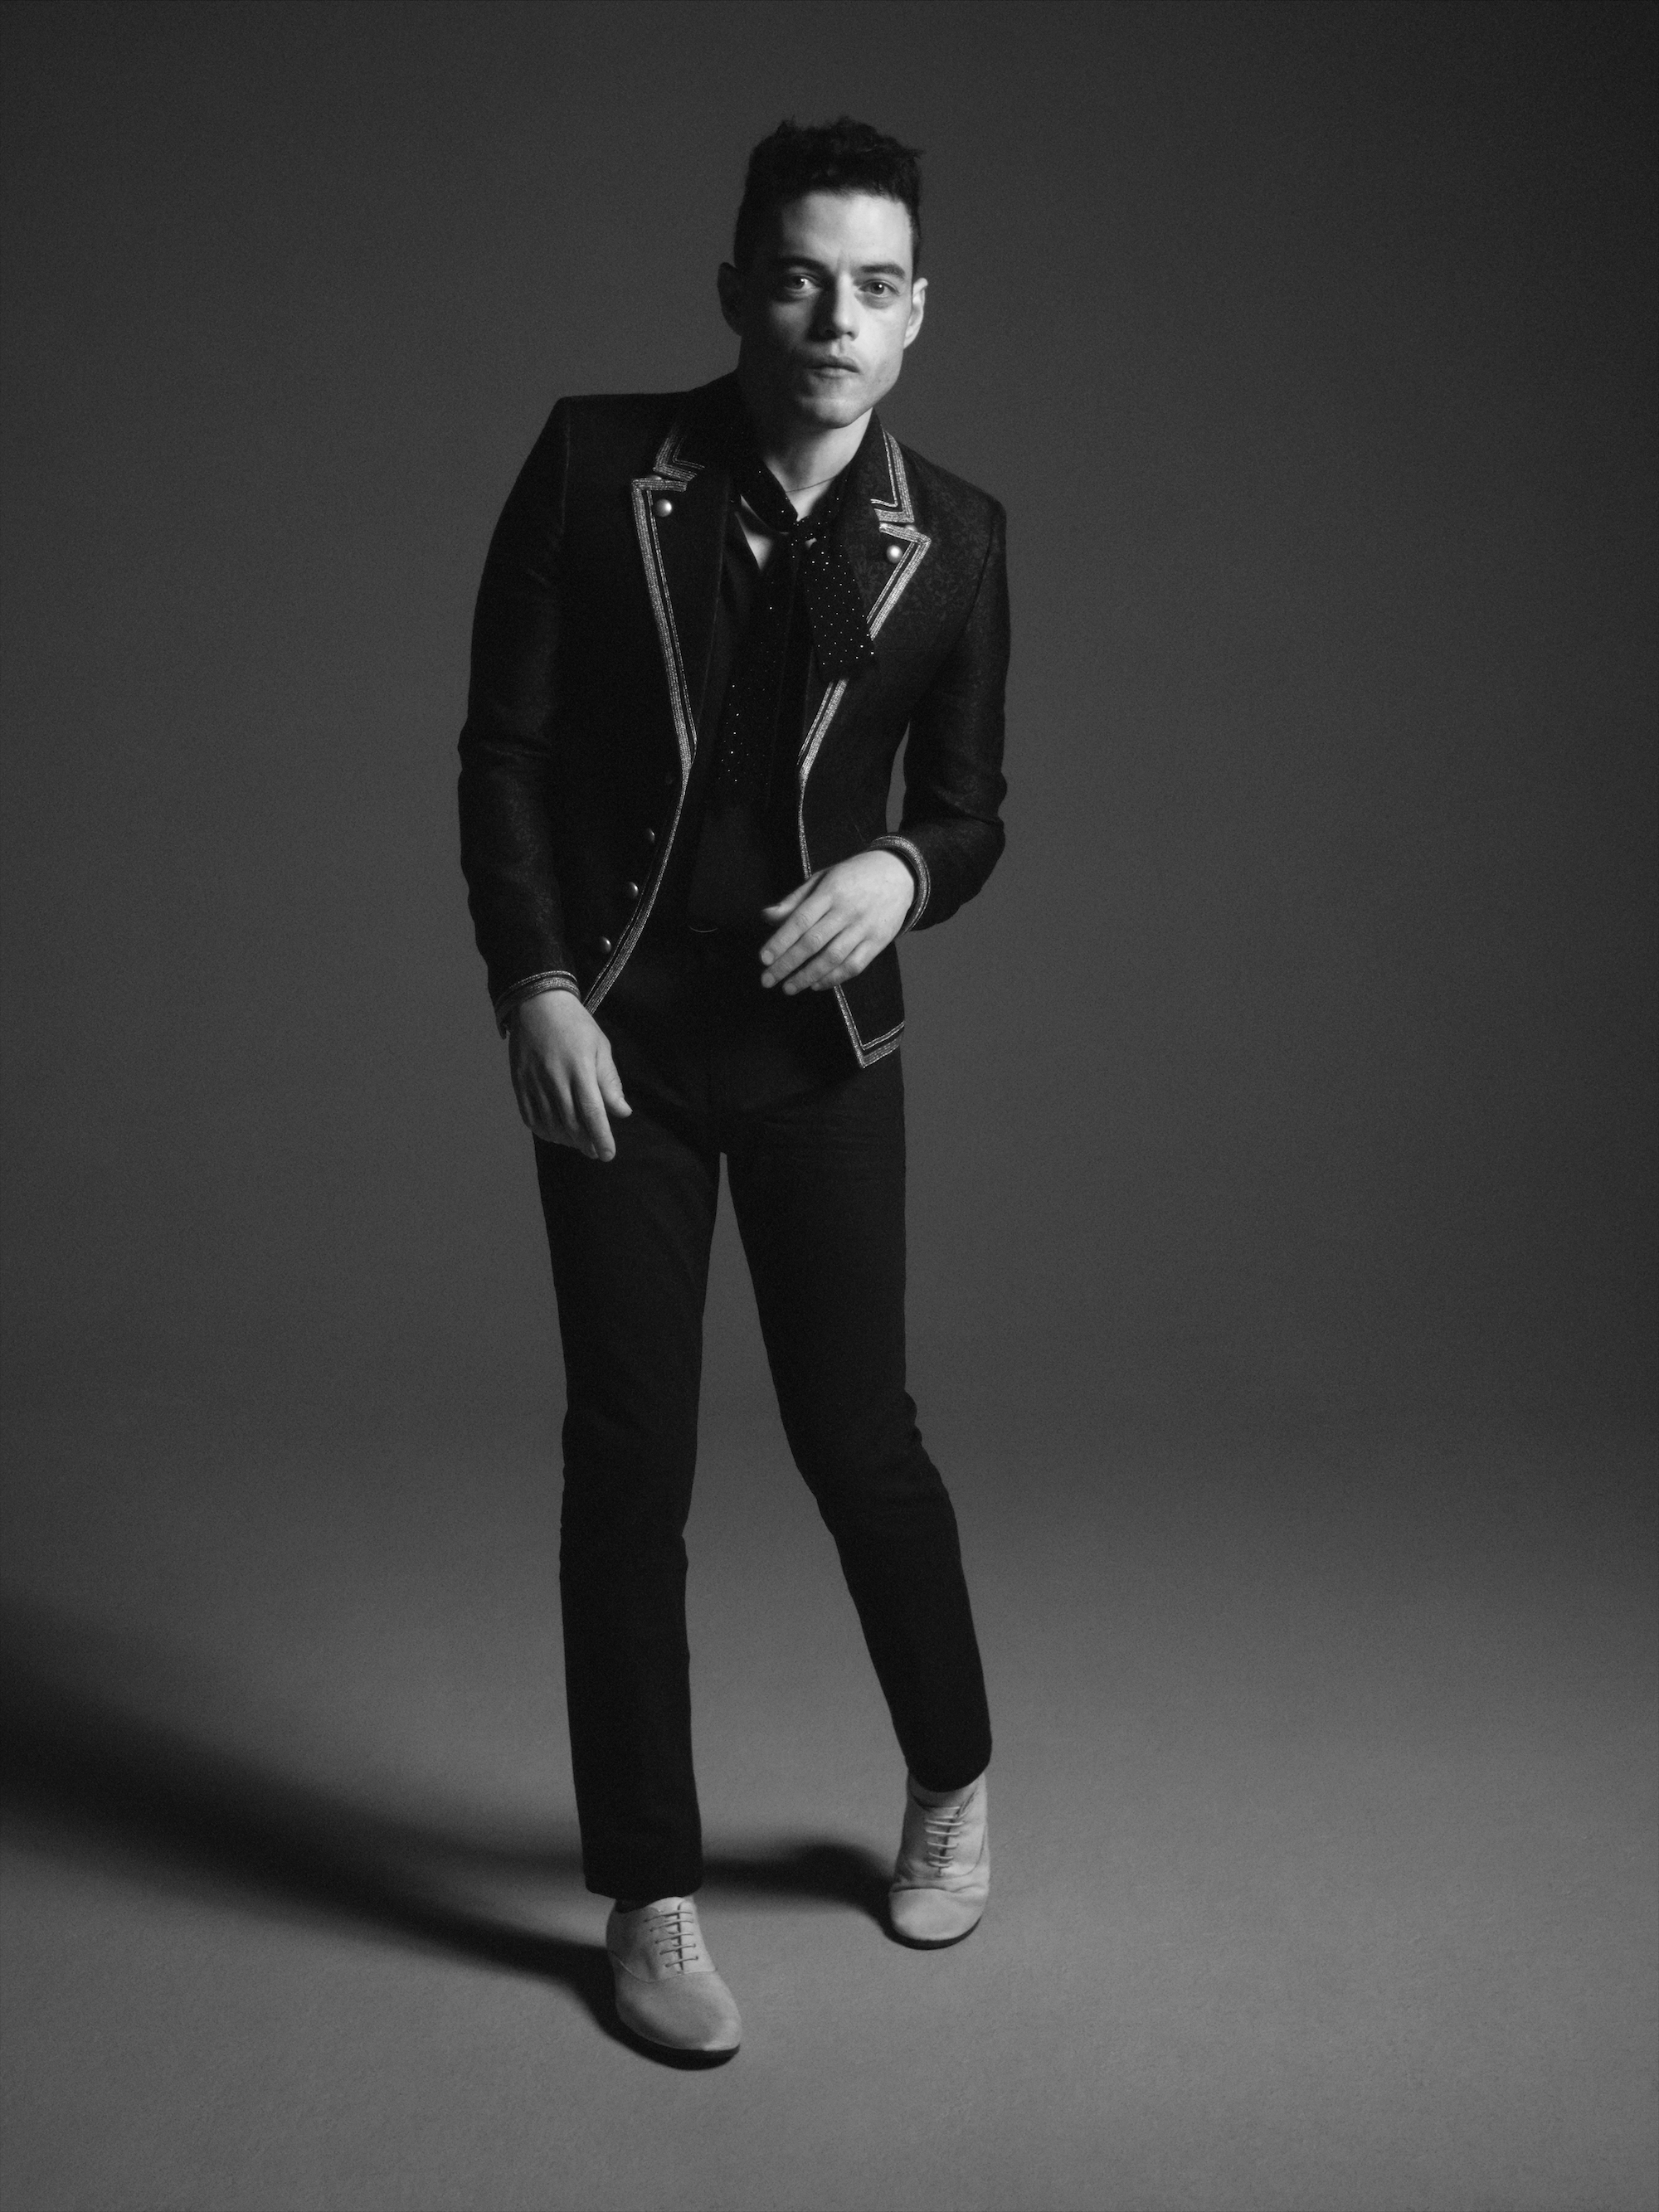 Rami Malek has been announced as the new face of Saint Laurent's menswear campaign black trousers